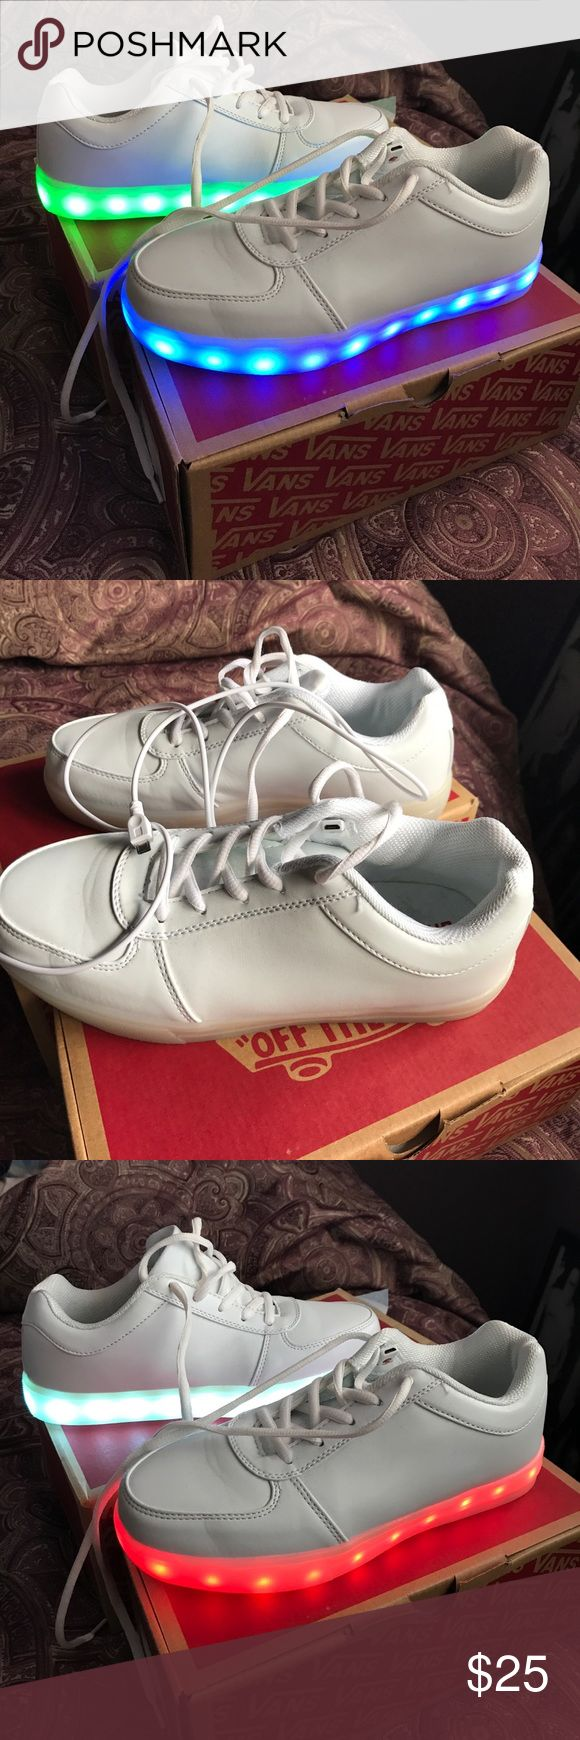 luminous Light Up Shoes Almost new worn once, super cool colors that change with the touch of a button by shoe tongue,  lights can be intermittent, flashing or still , several L E D Colors Saguard Shoes Sneakers